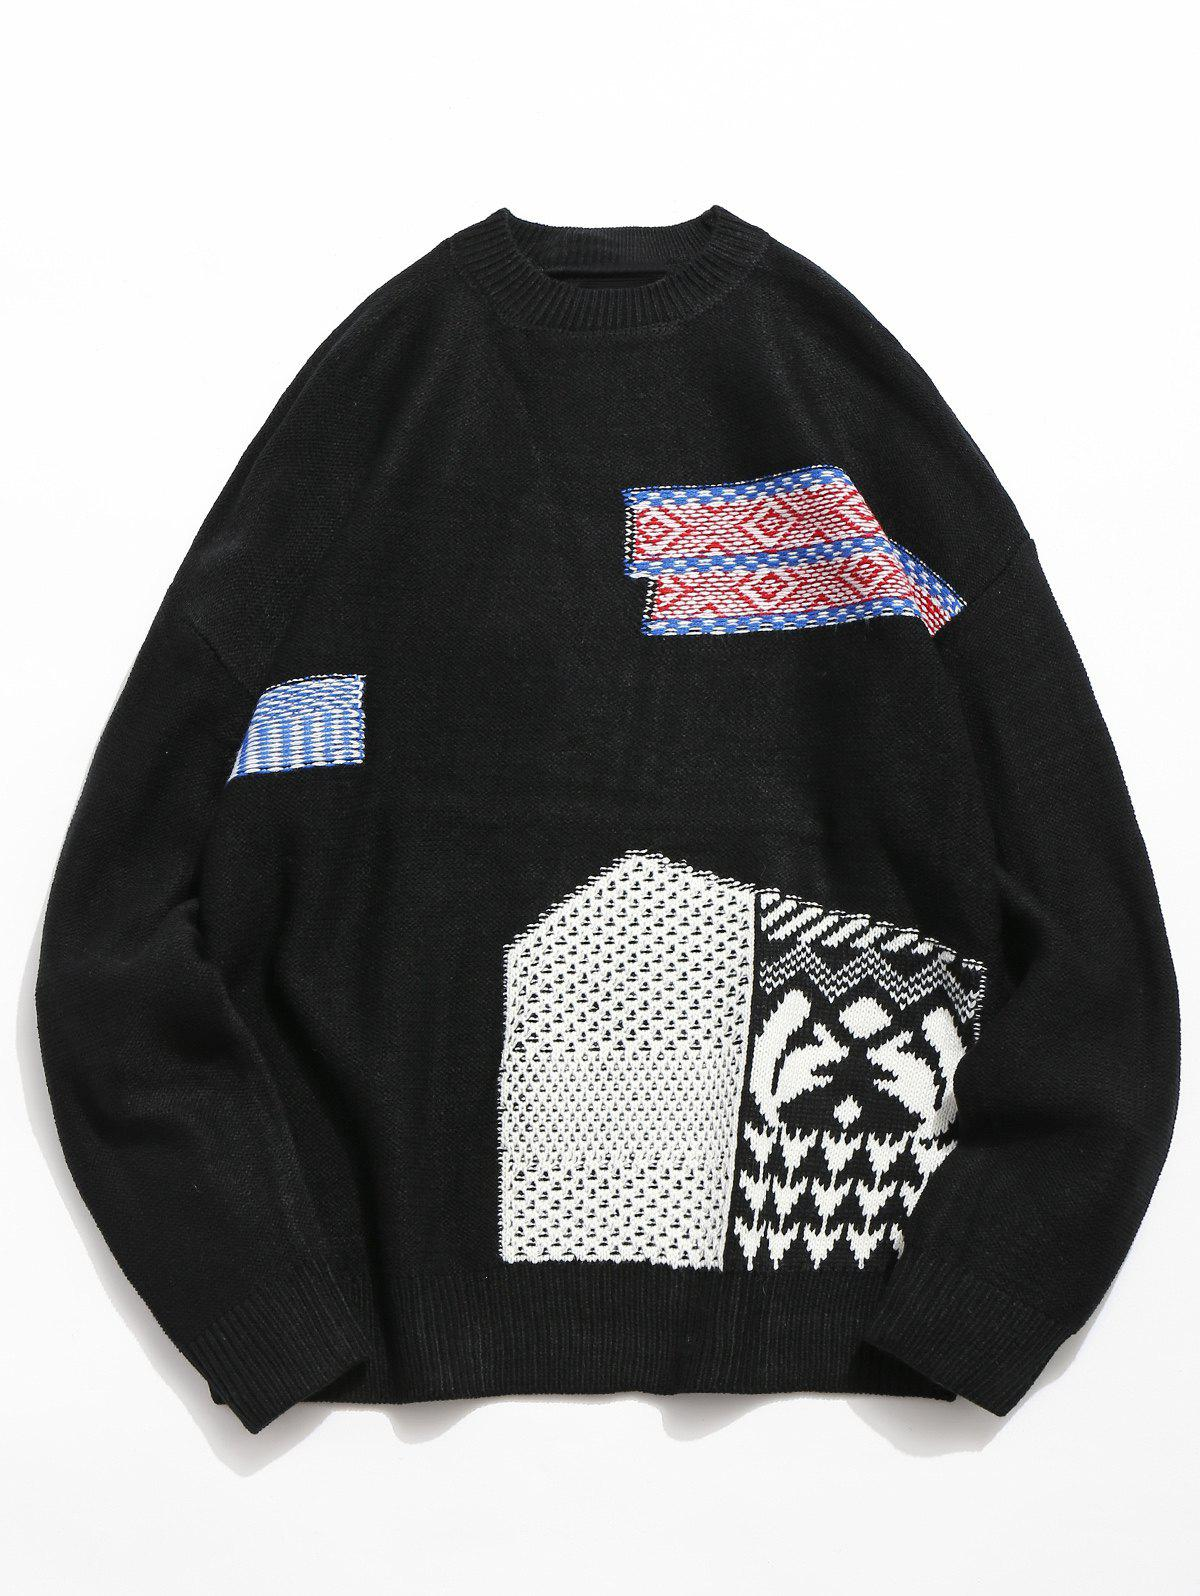 Geometric Pattern Pullover Knitted Sweater, Black